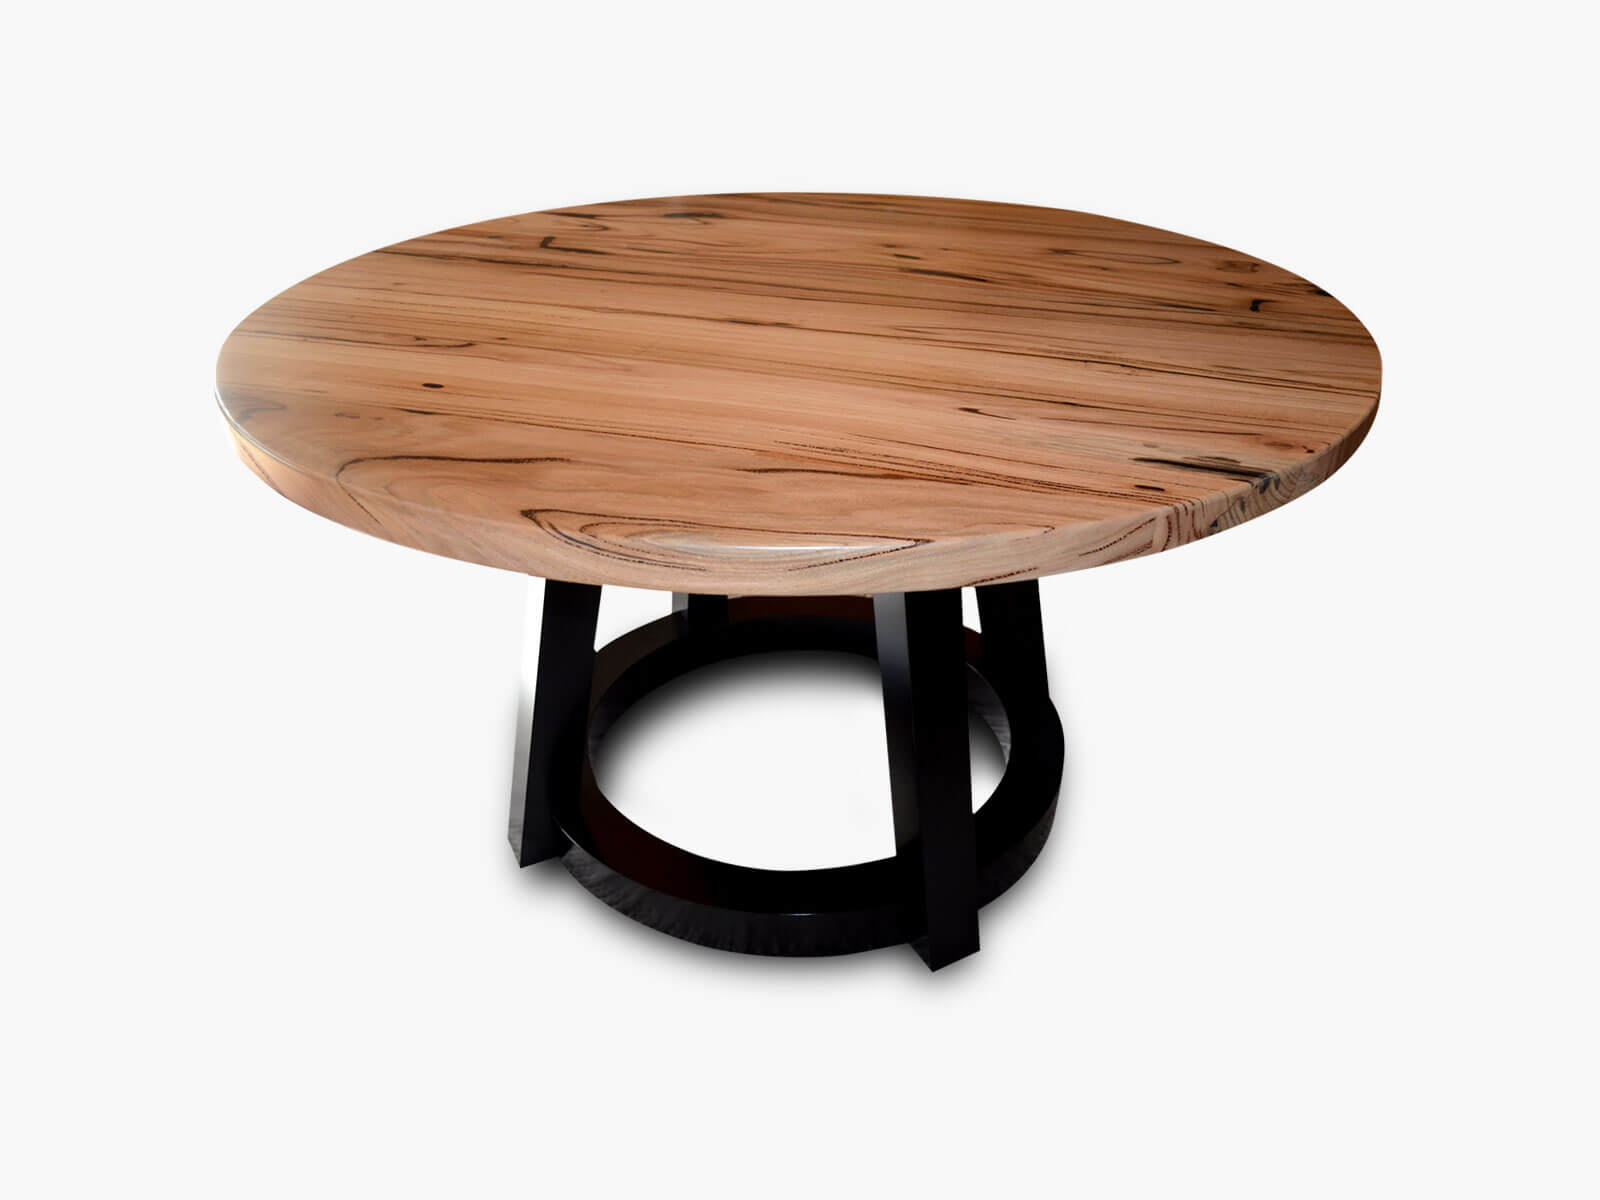 Mundaring Marri Round Dining Table